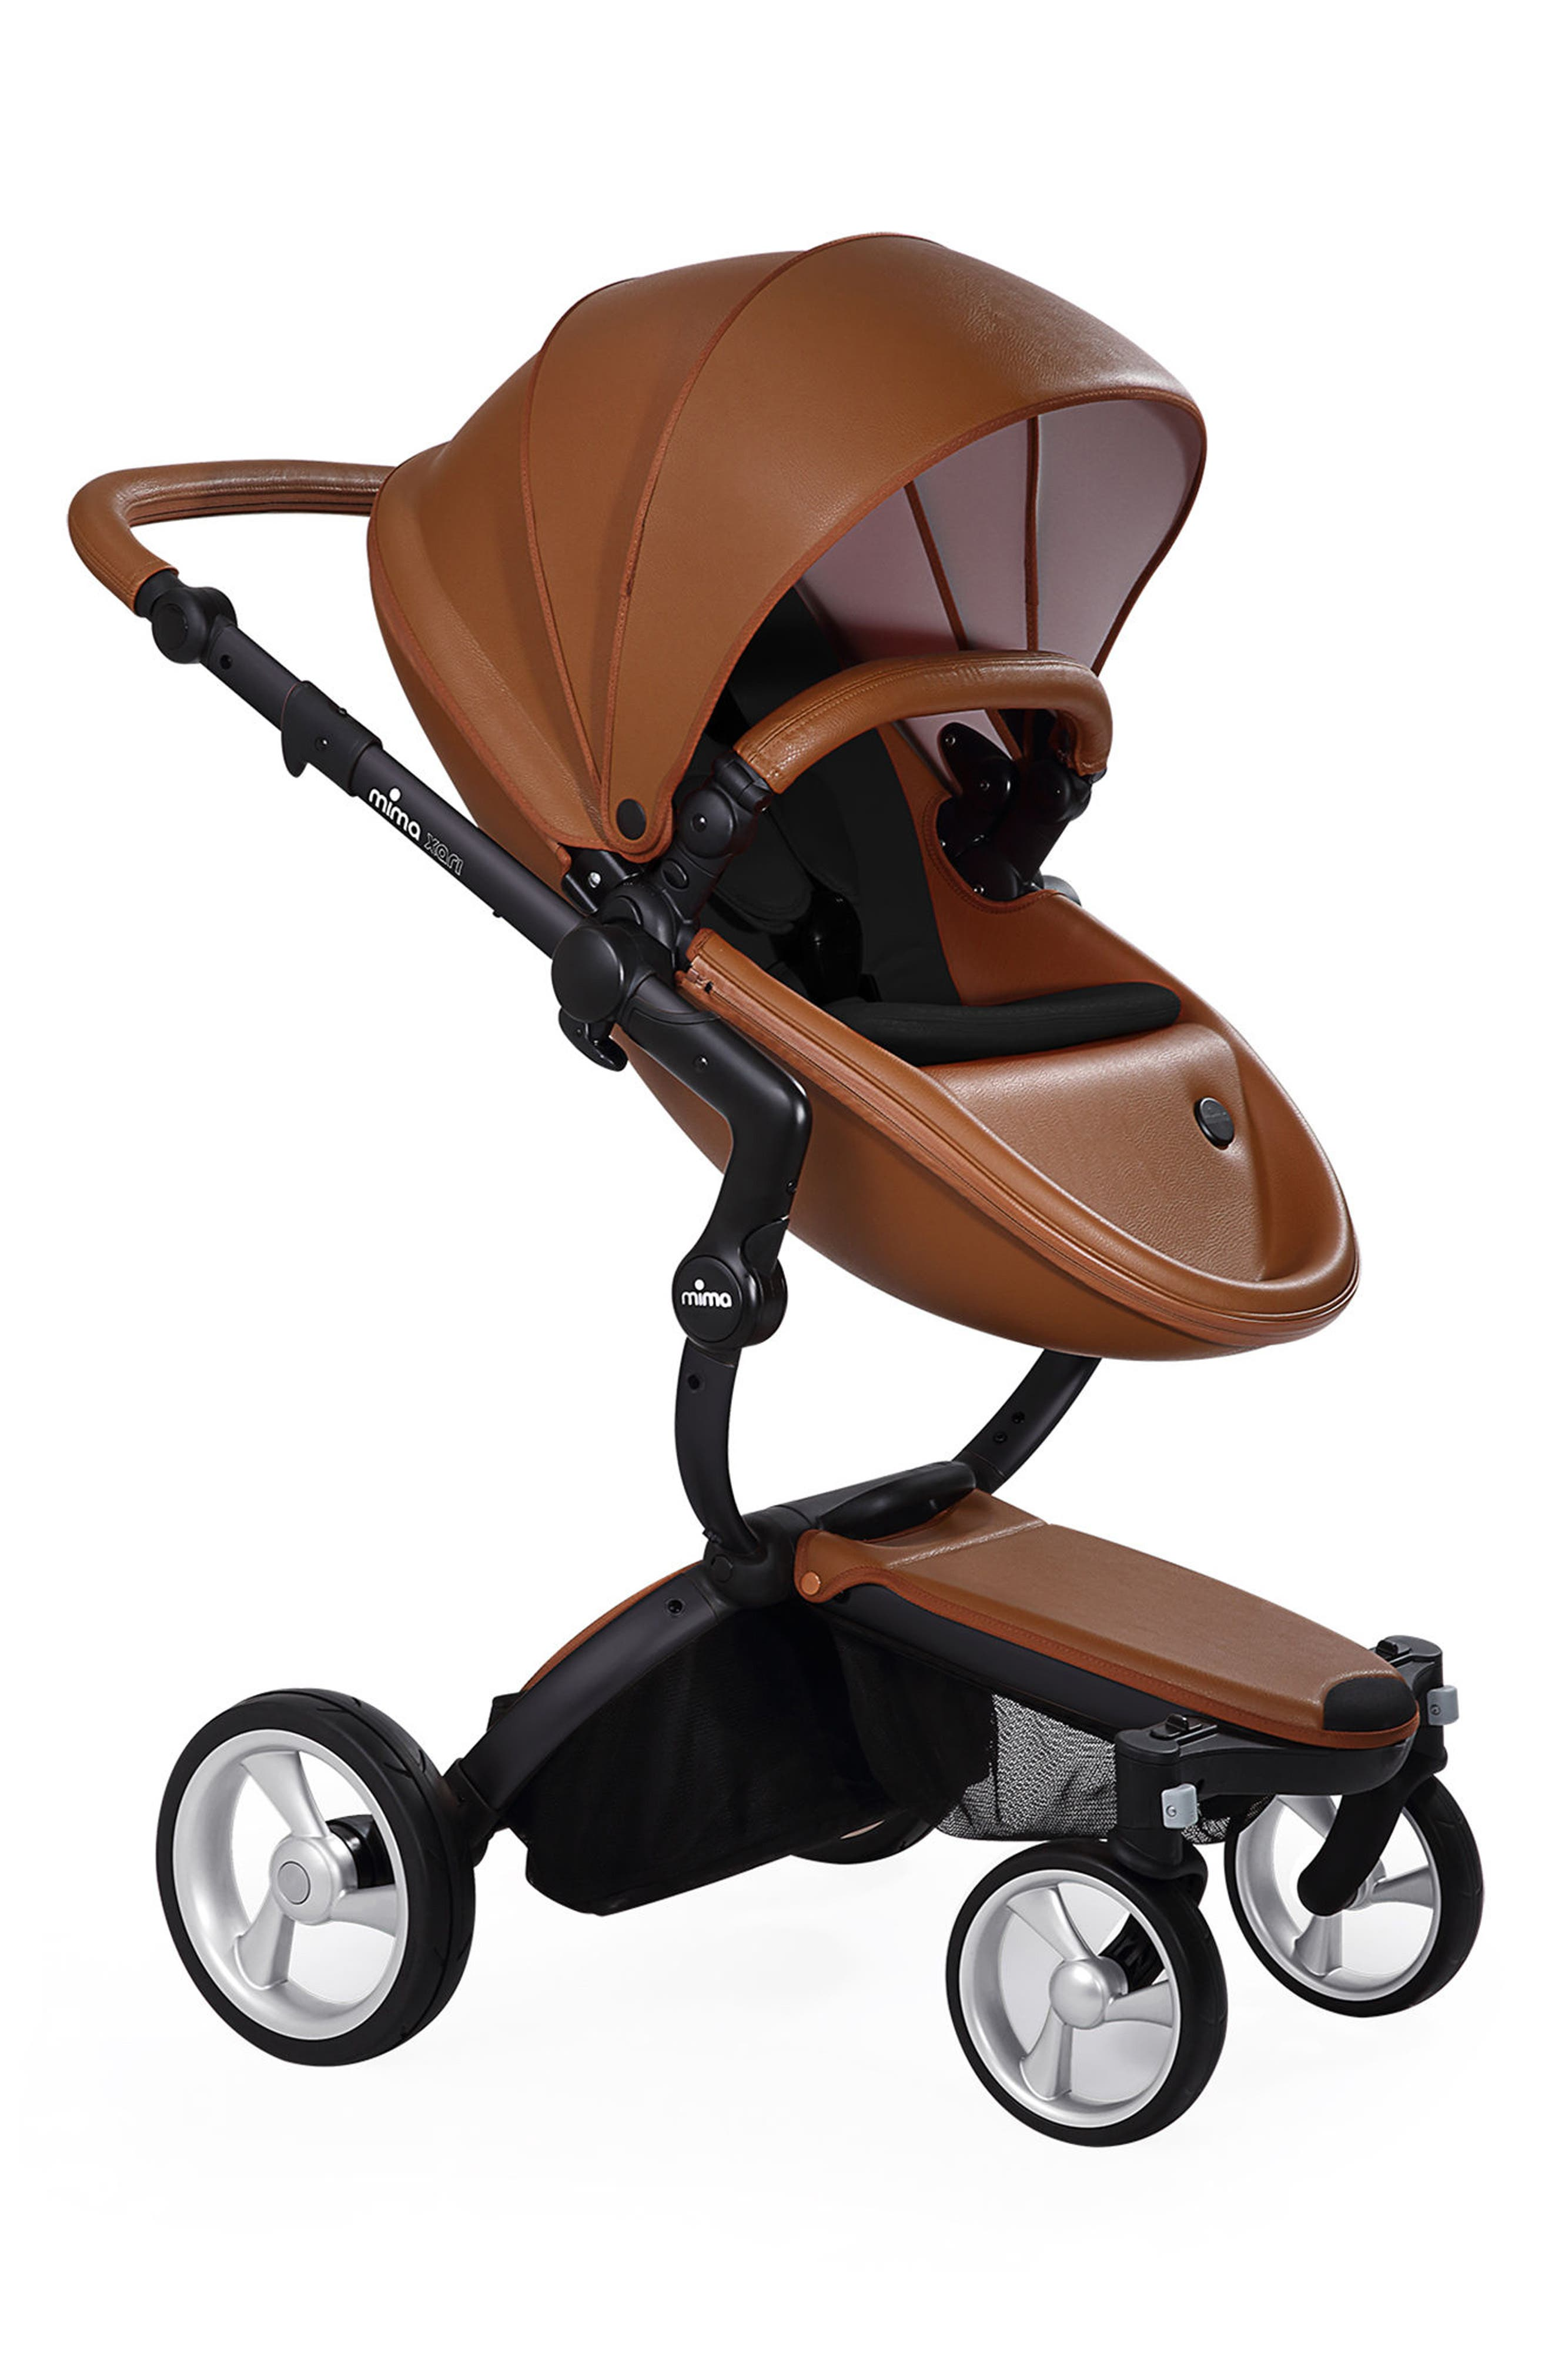 Xari Black Chassis Stroller with Reversible Reclining Seat & Carrycot,                             Main thumbnail 1, color,                             Camel / Black